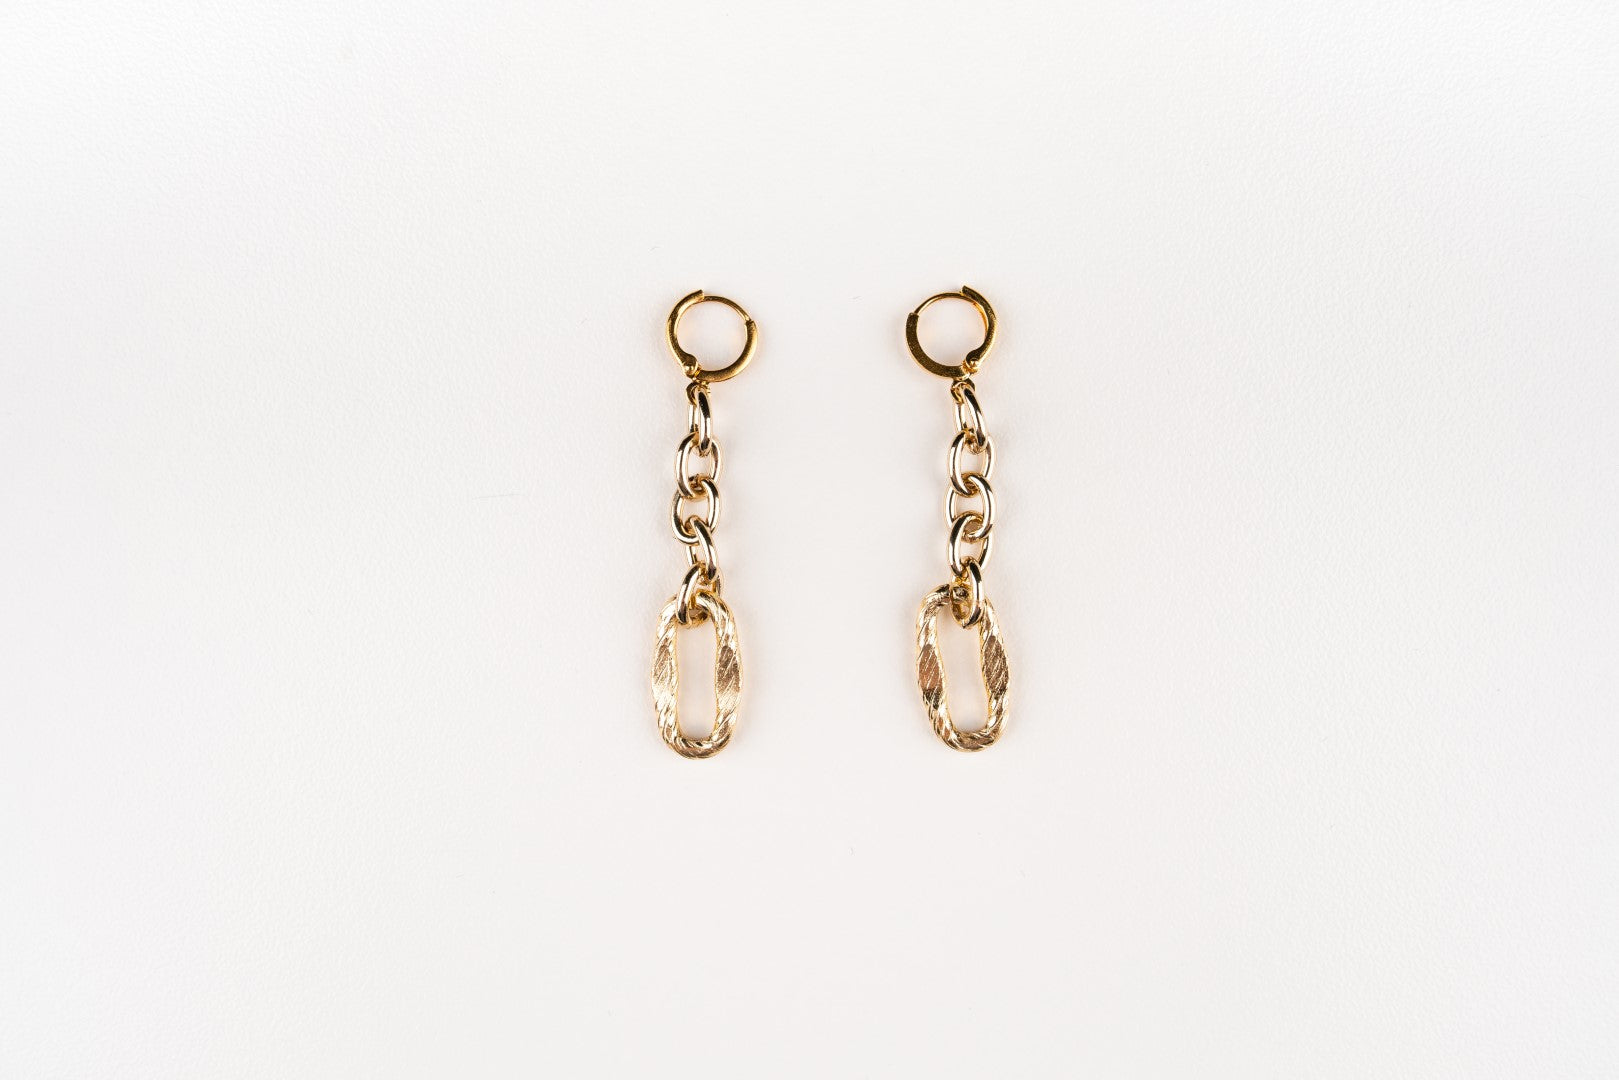 Carolily Finery earrings made from gold filled chain